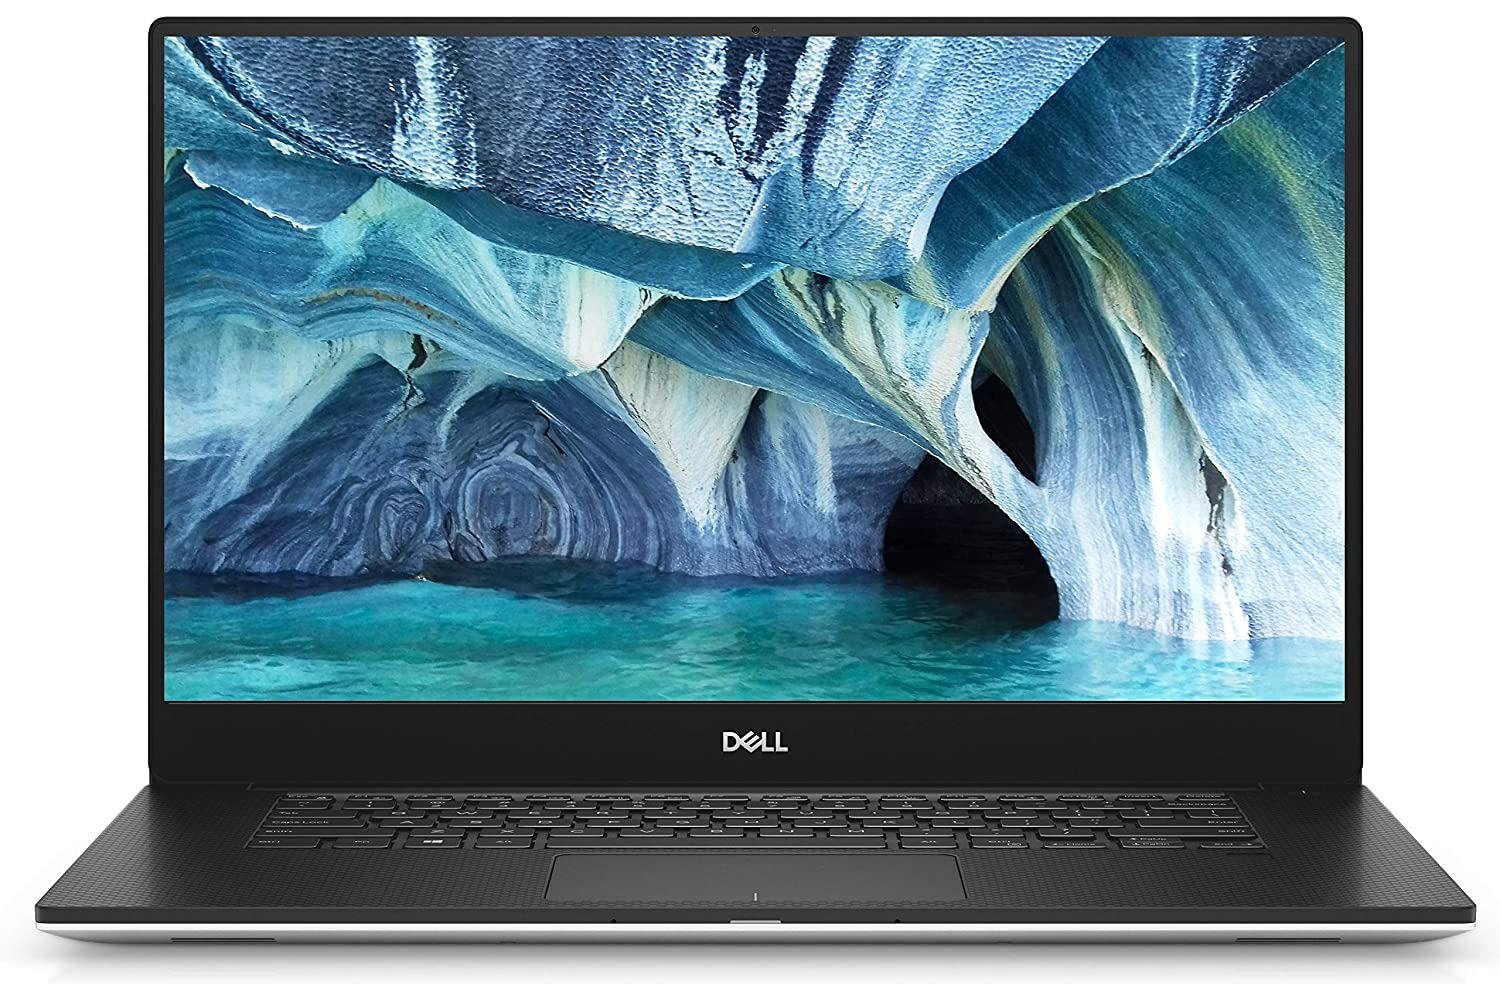 "Dell XPS 15 7590, 15.6"" 4K UHD Touch, 9th Gen Intel Core i7-6 Core 9750H, NVIDIA GeForce GTX 1650 4GB GDDR5, 16GB DDR4 RAM, 1TB SSD"